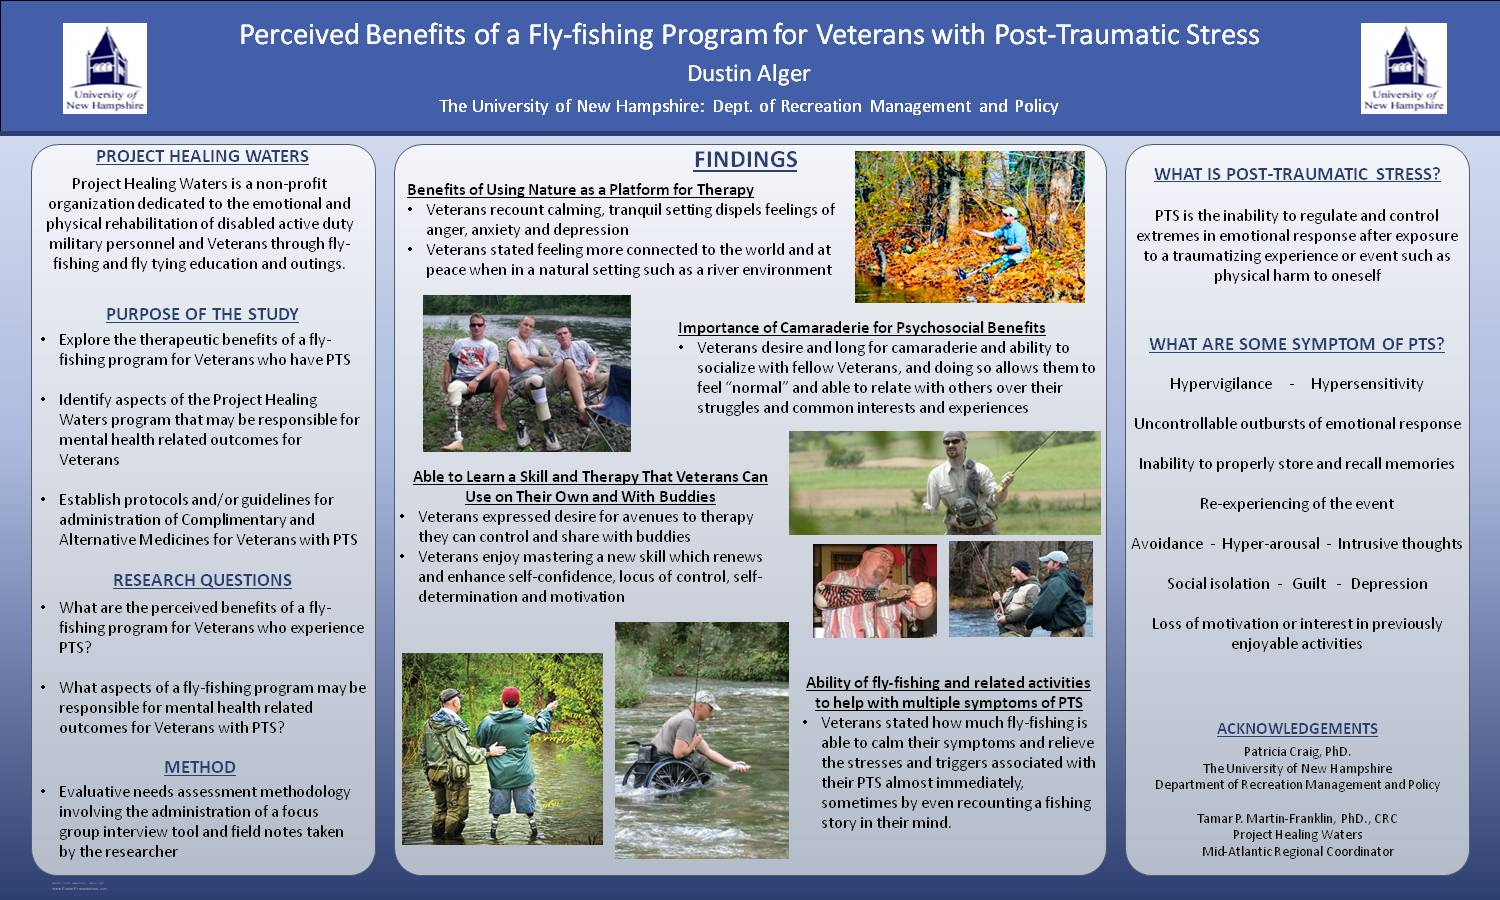 Perceived Benefits Of A Fly-Fishing Program For Veterans With Post-Traumatic Stress by dmo256